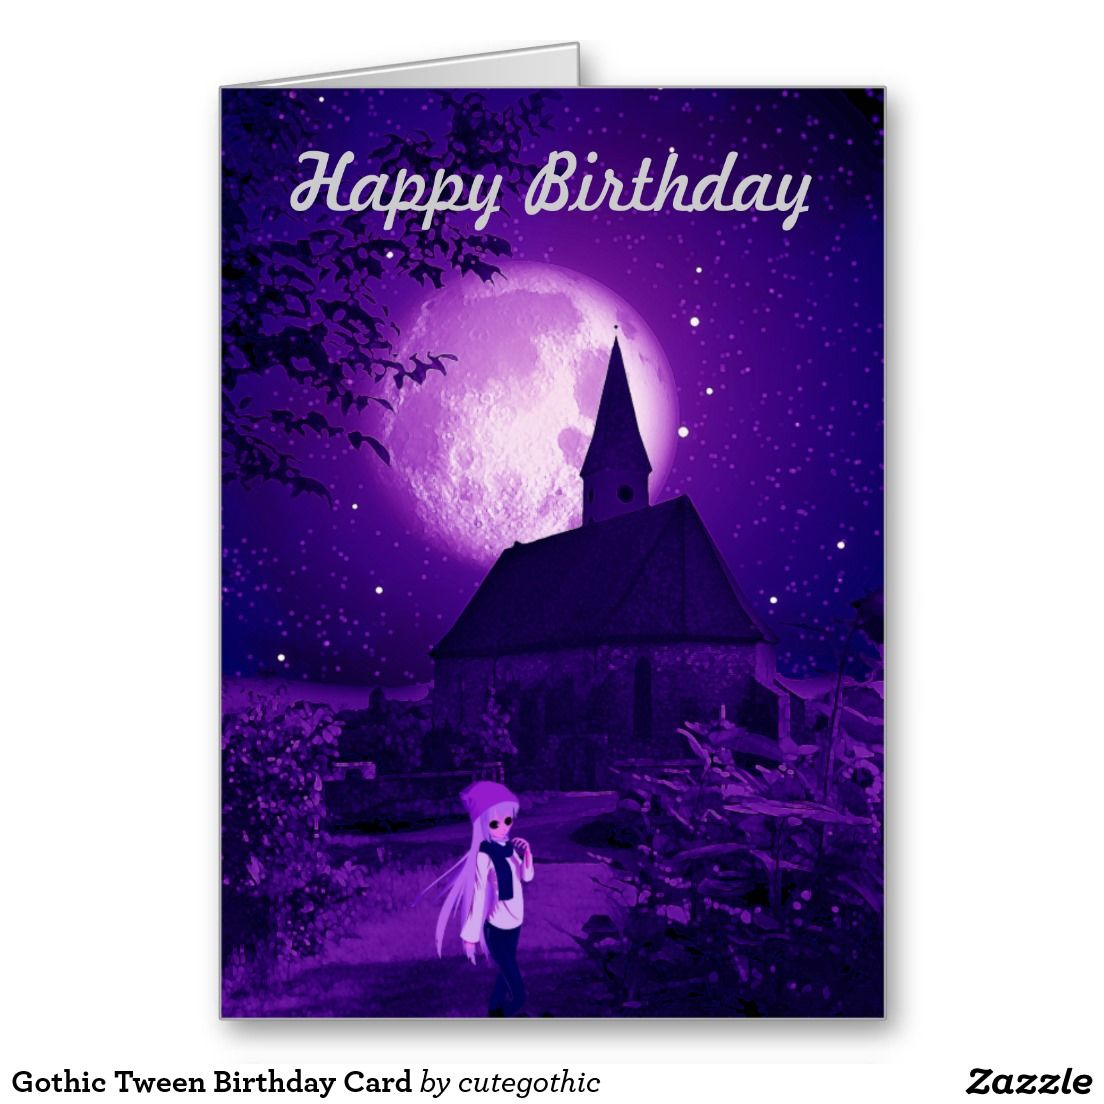 Gothic tween birthday card birthday cards pinterest tween and birthdays kristyandbryce Choice Image